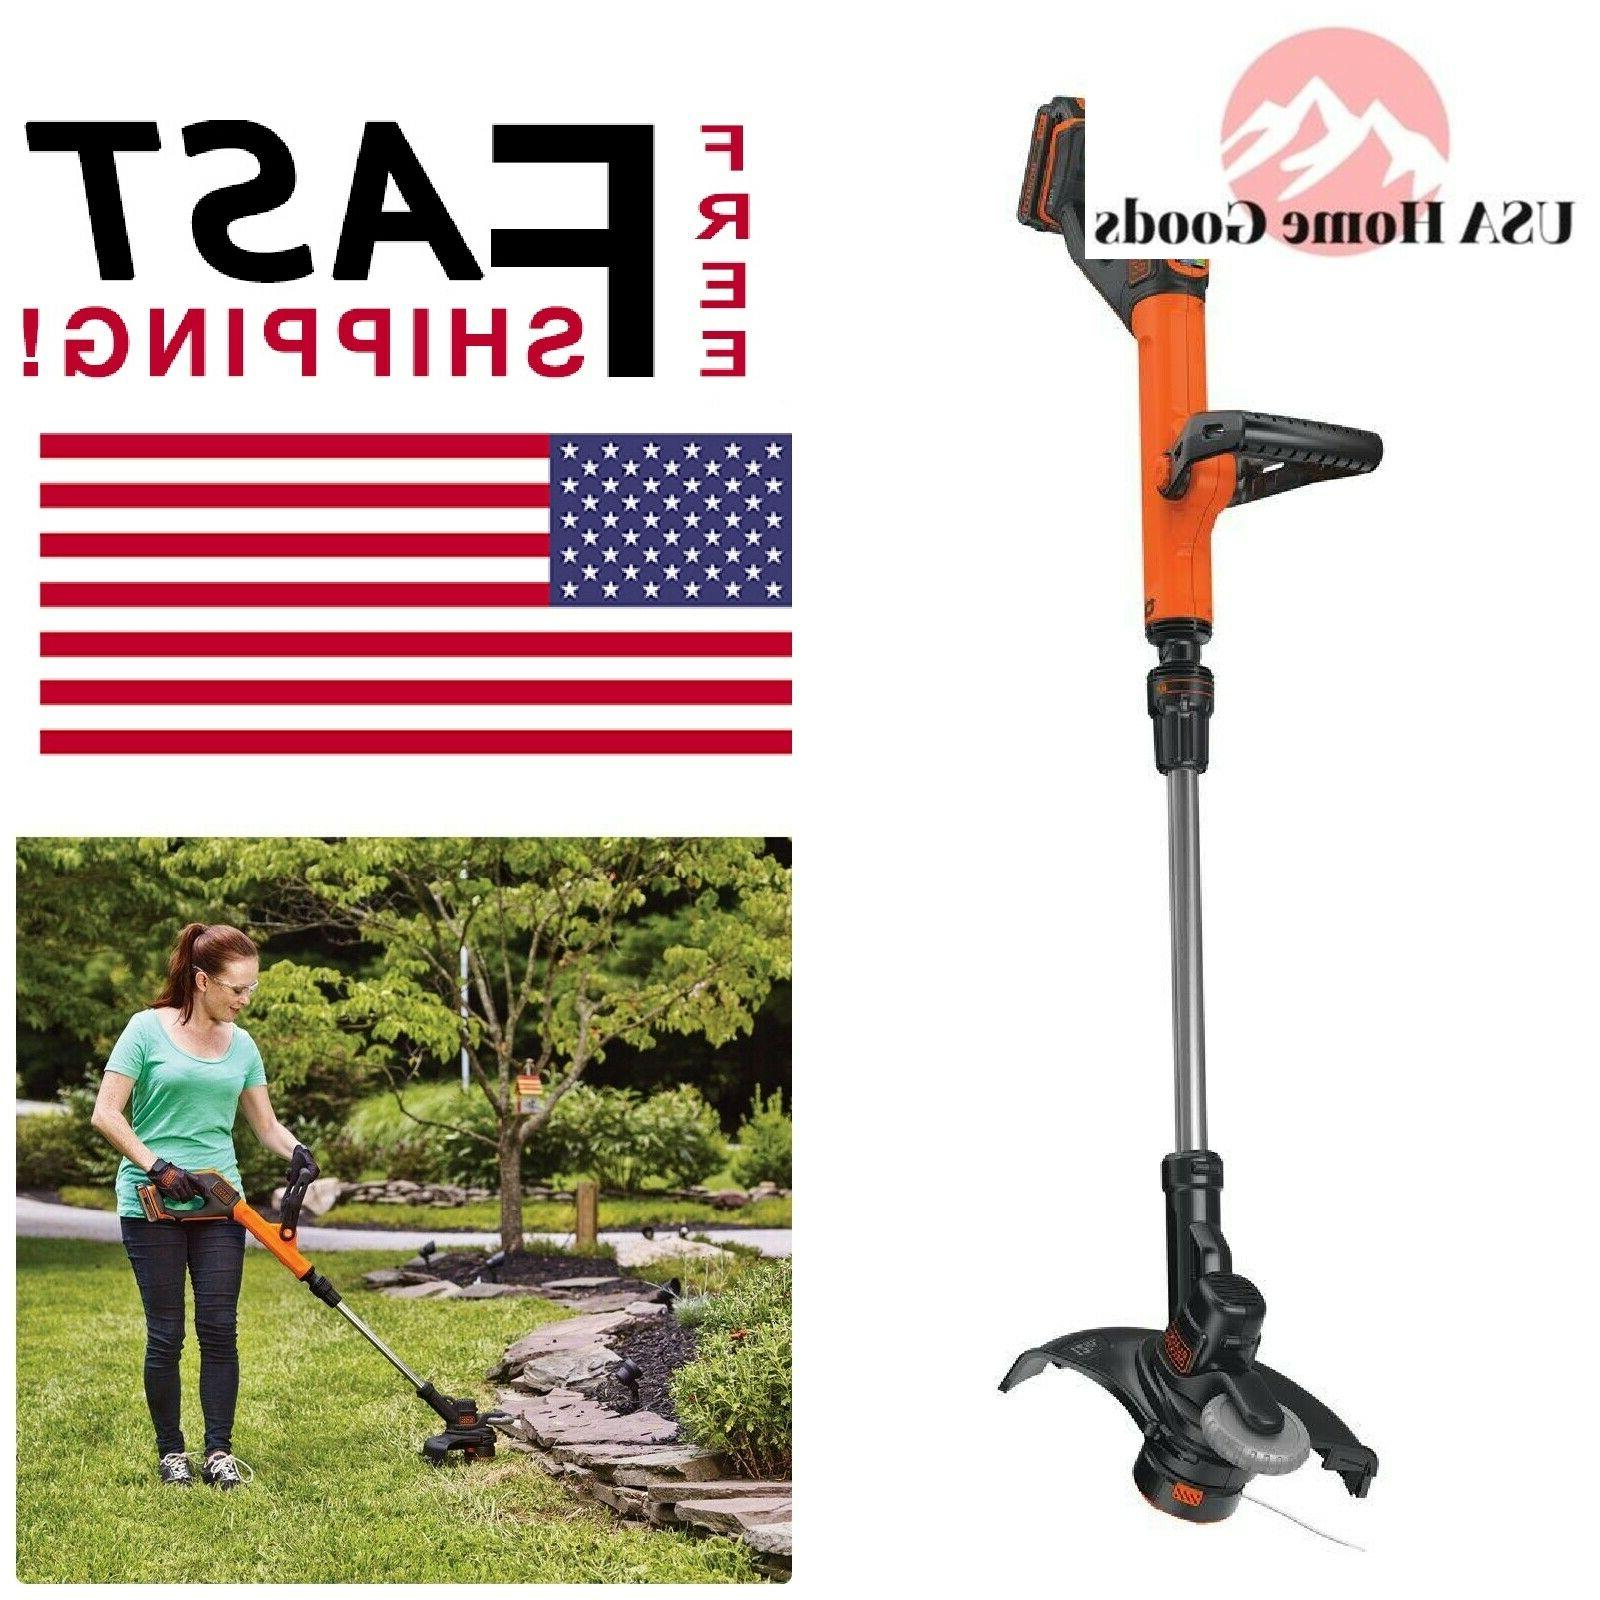 lst522 max lithium string trimmer